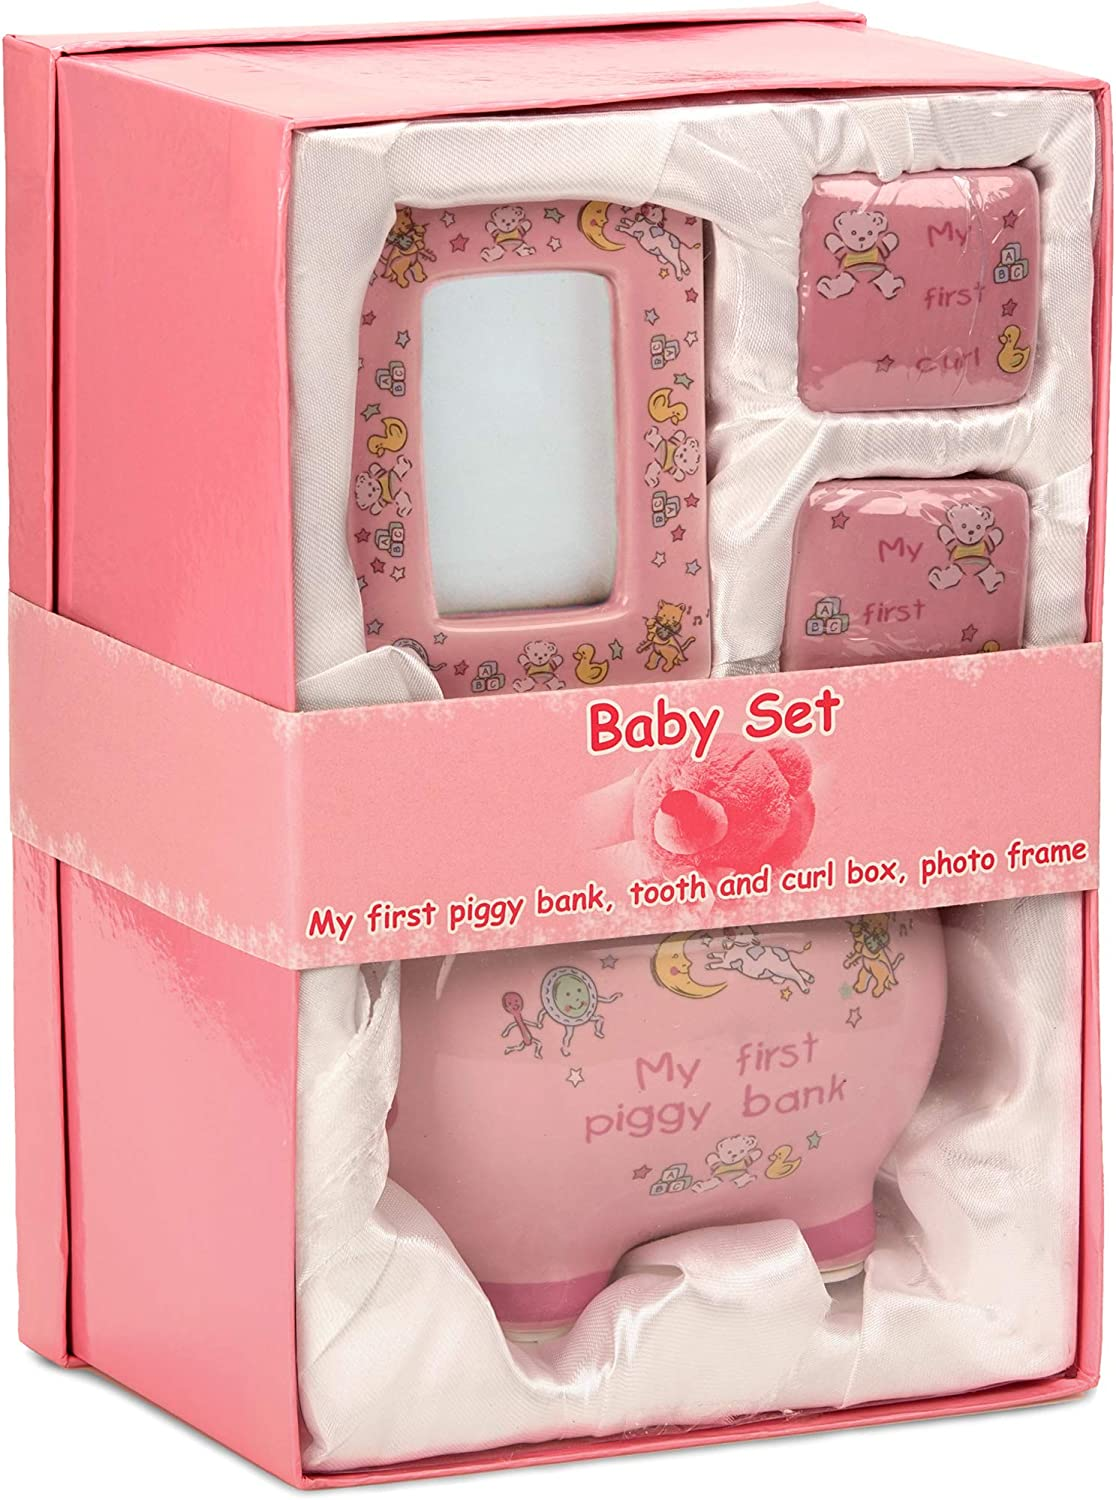 BRUBAKER My First Piggy Bank Gift Set for Baby Girl – 4 Pcs Keepsake Gift Set Includes Piggy Bank, First Curl, First Tooth and Photo Frame – Pink